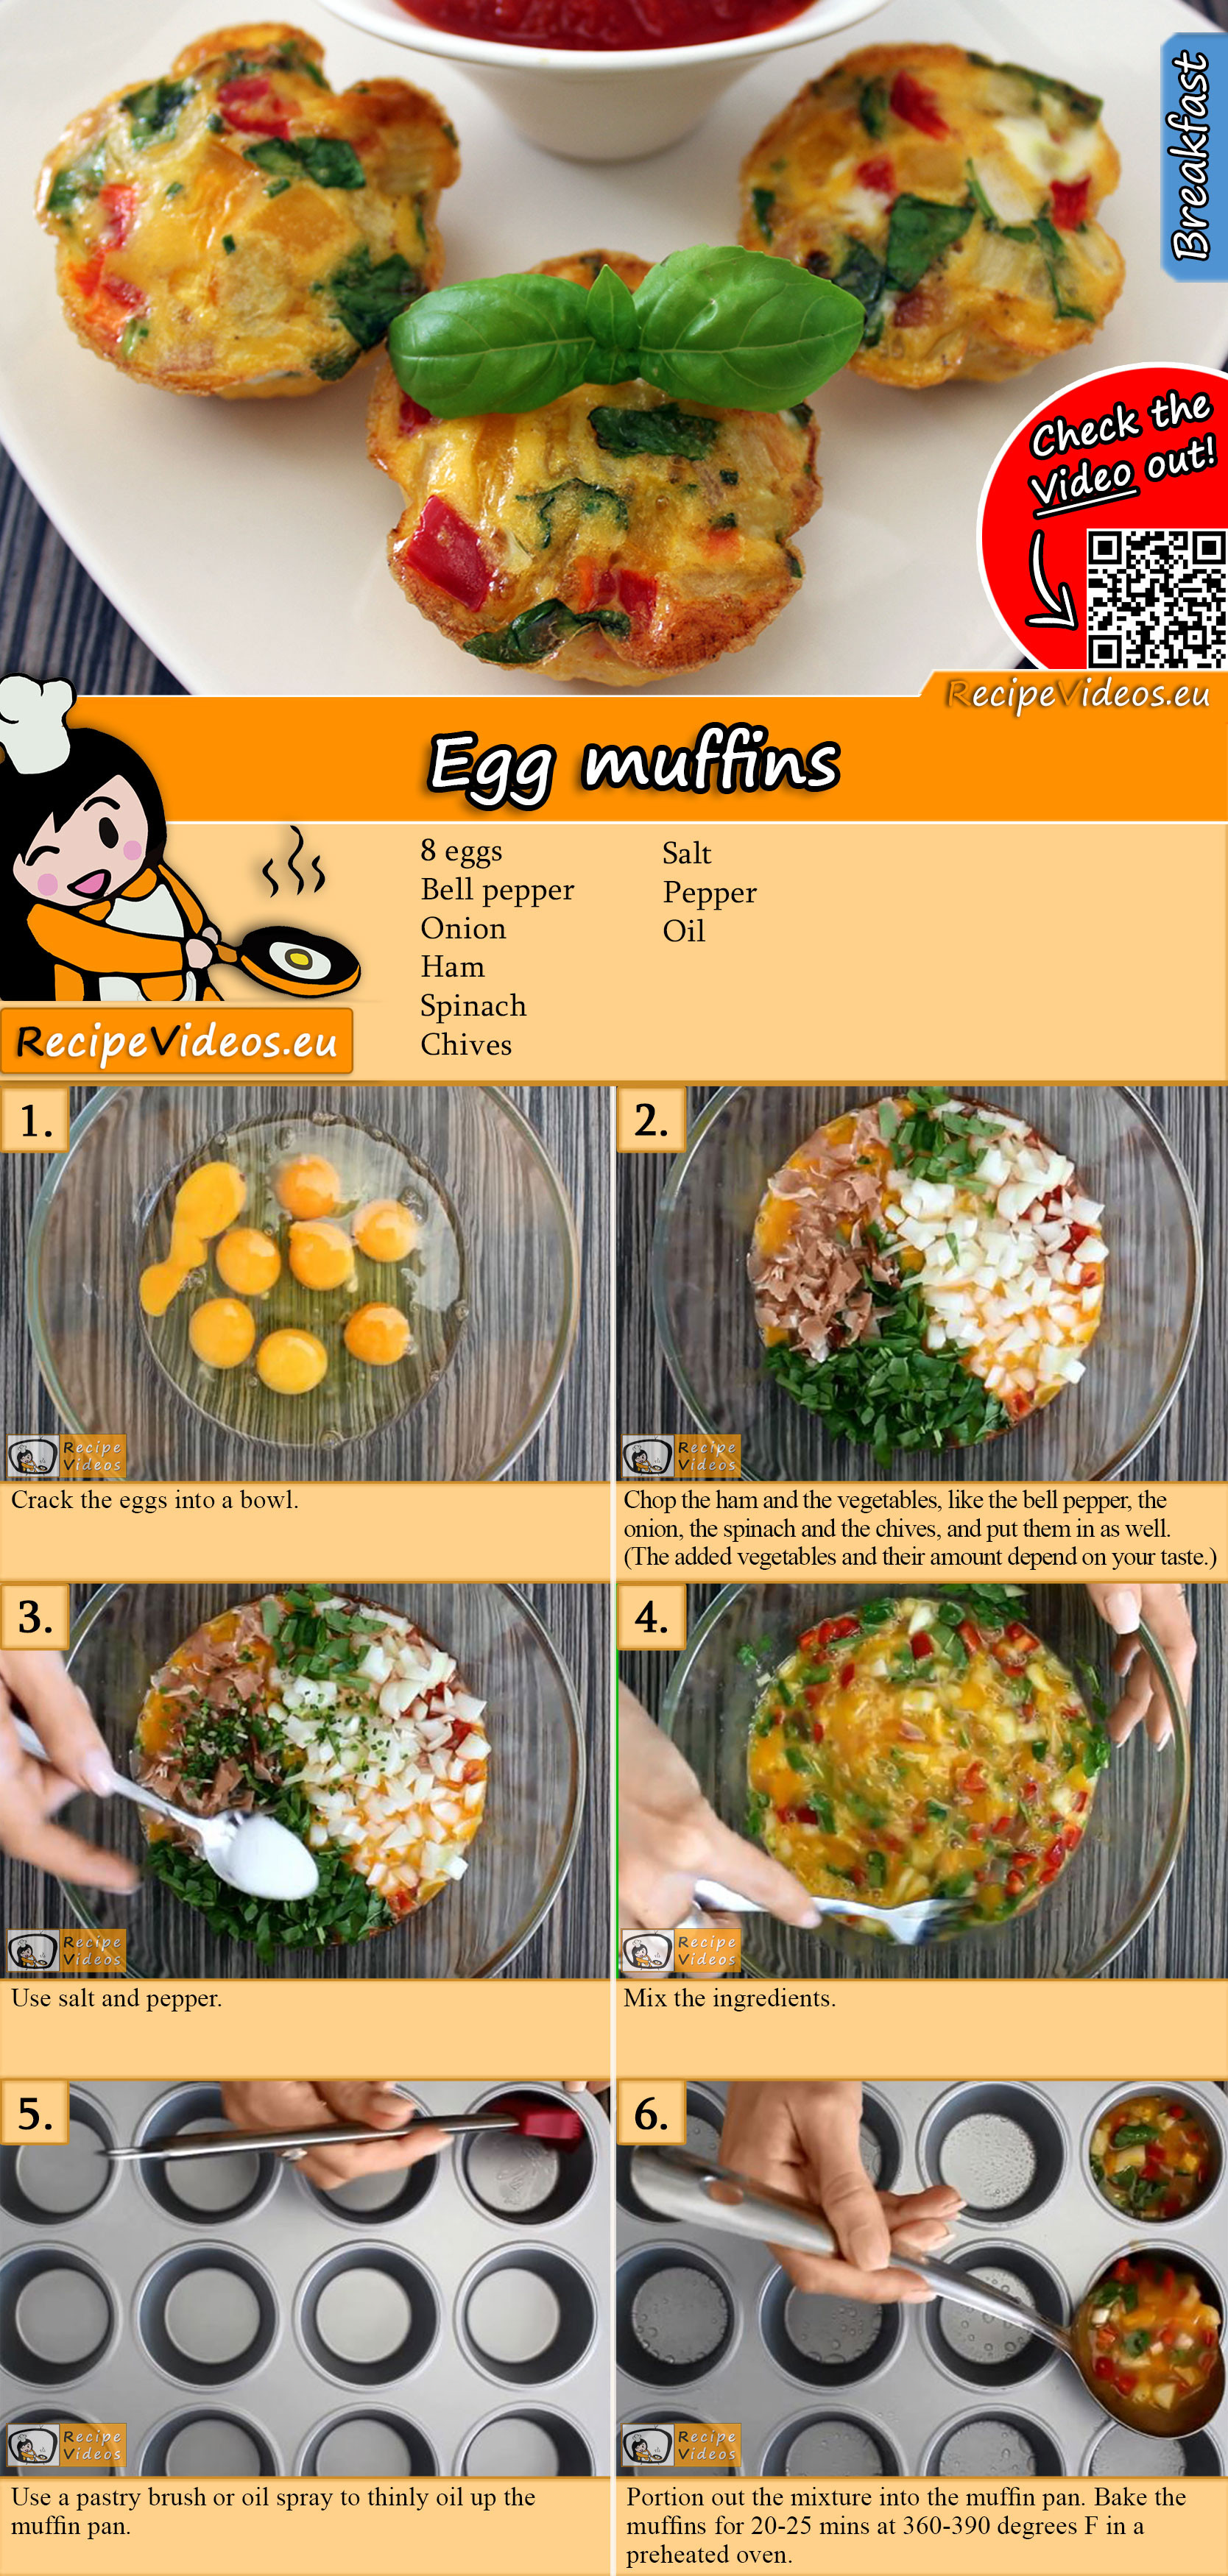 Egg muffins recipe with video